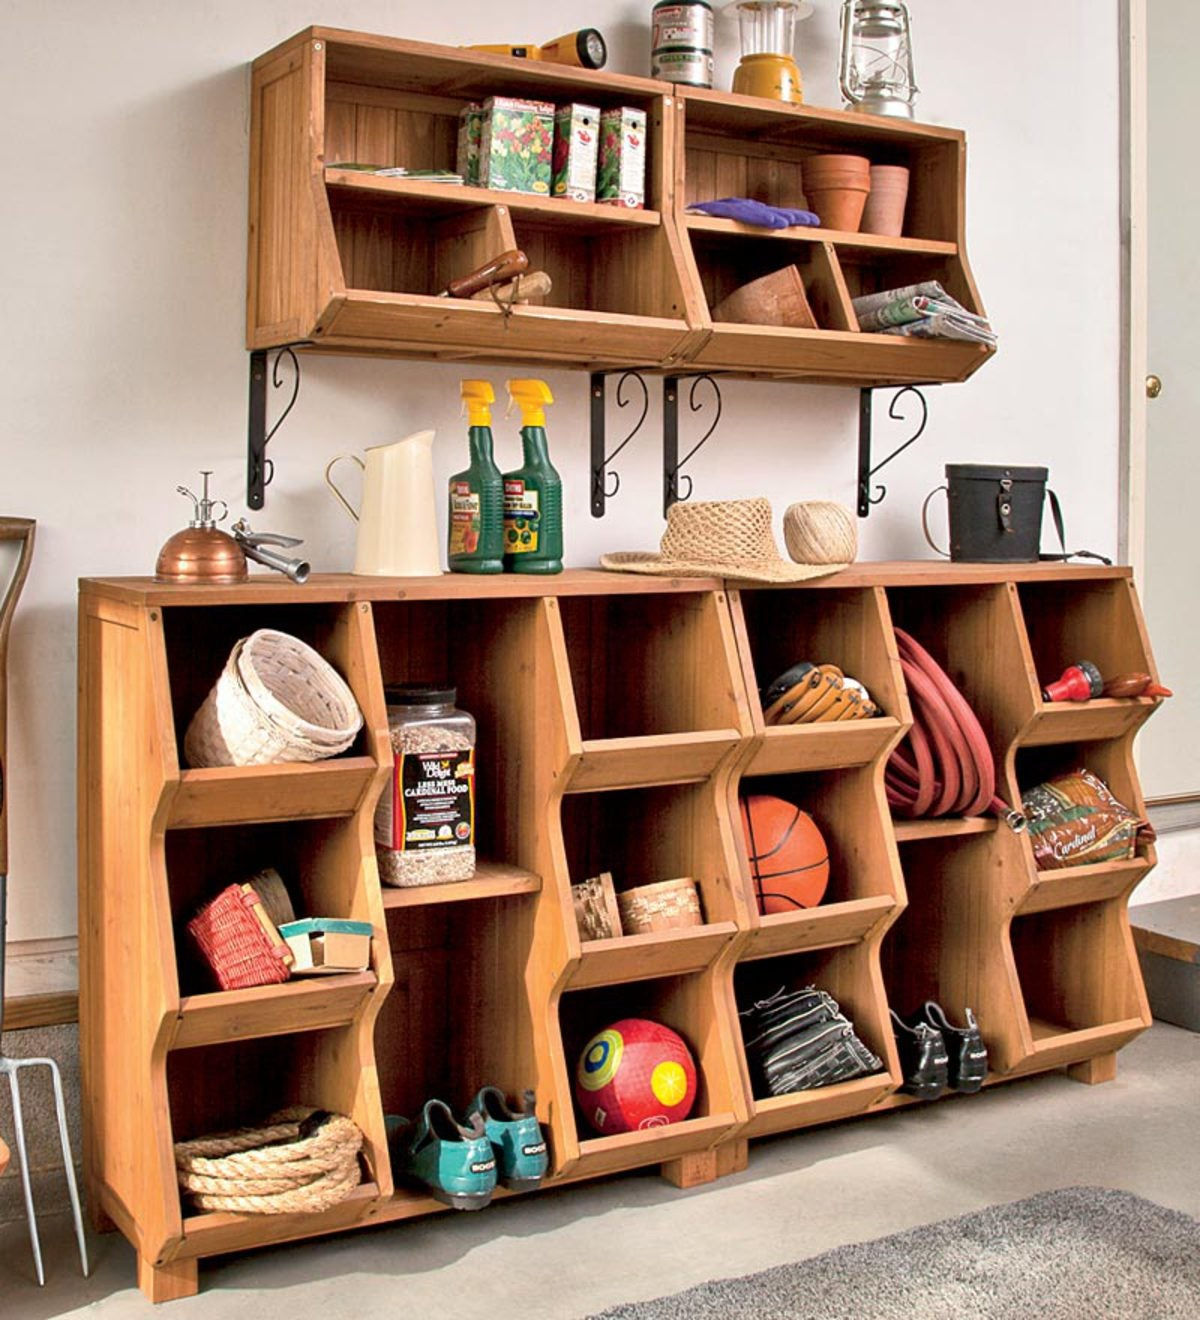 Fir Wood Storage Cubby with Removable Center Shelf